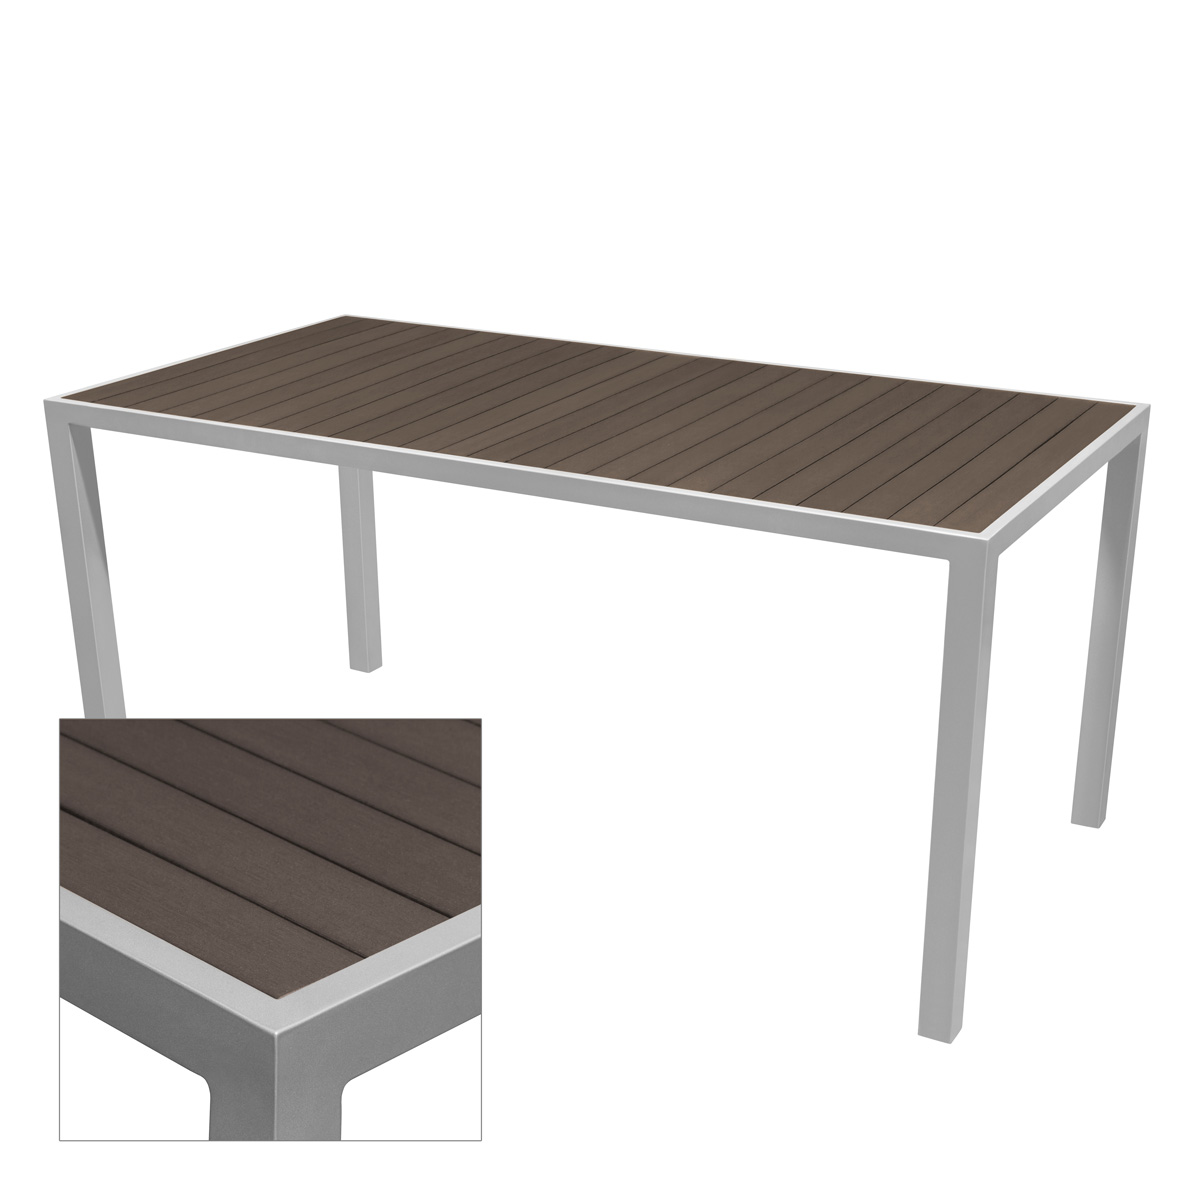 SANTA ROSA RECT TABLE BASES-SILVER RC2106-2113 $229.00-$1029.00 BAR HEIGHT $399.00-$1329.00 CLICK FOR SPEC SHEET